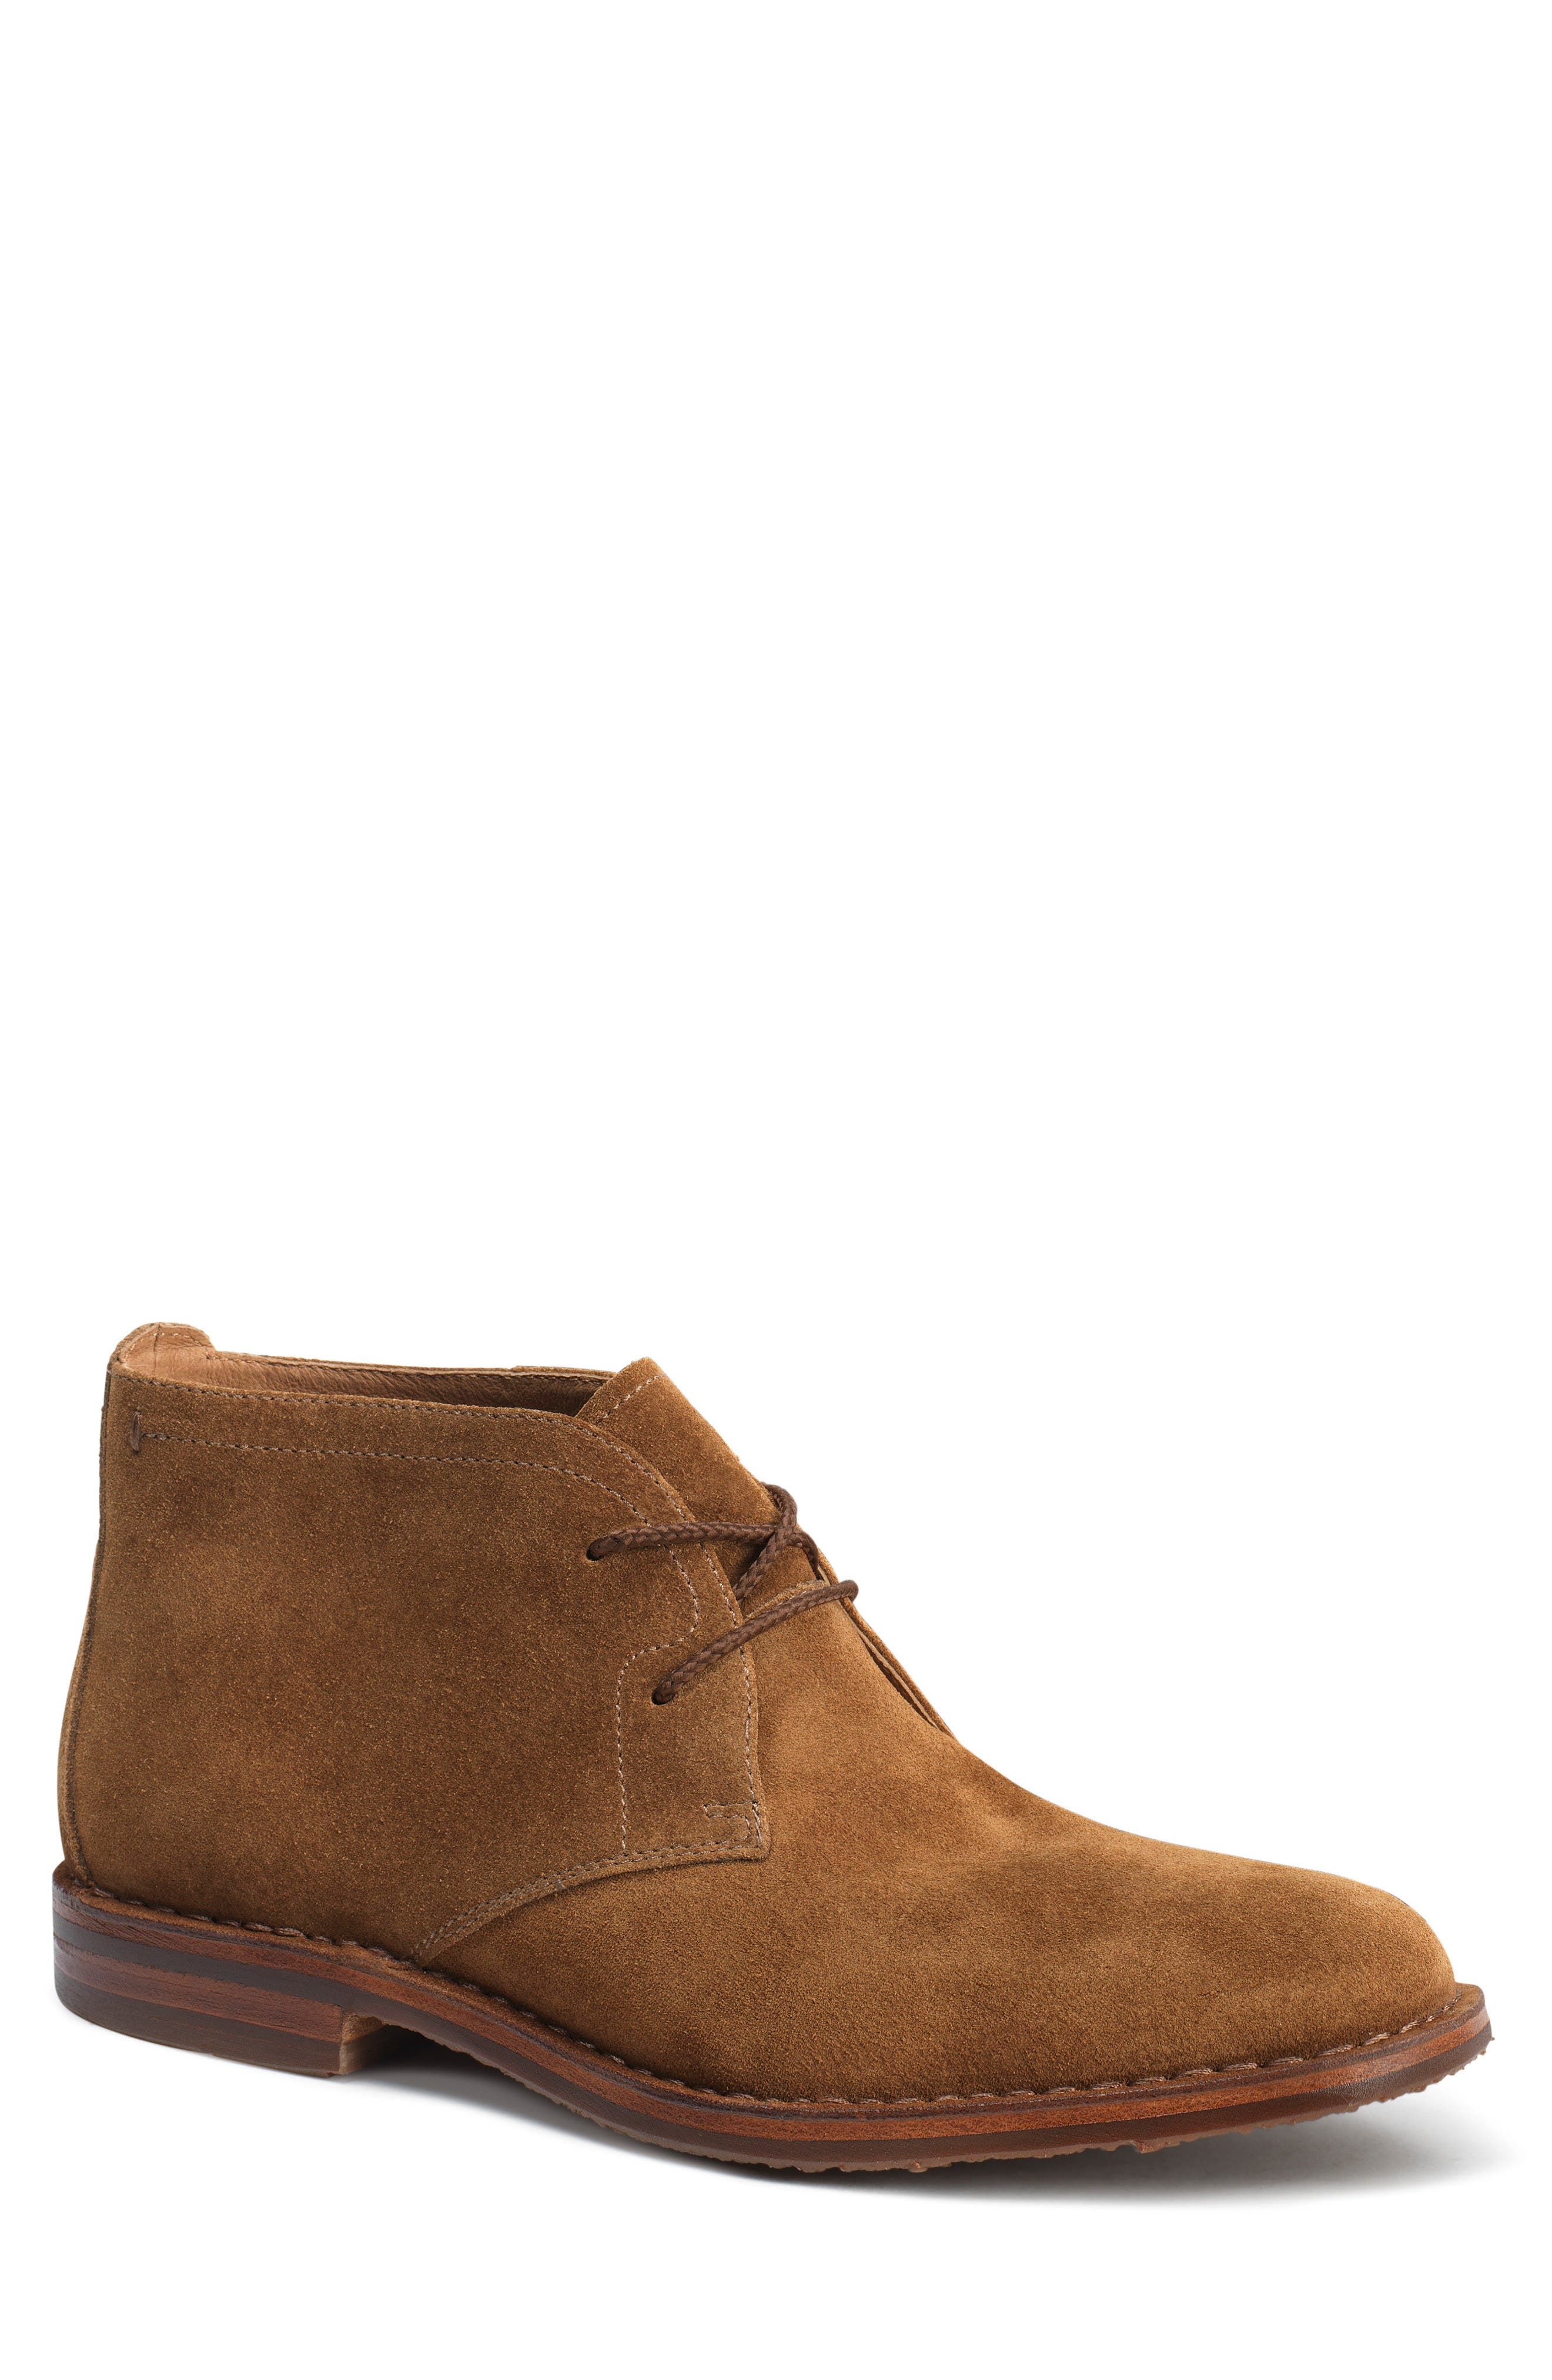 TRASK 'Brady' Chukka Boot, Main, color, SNUFF SUEDE